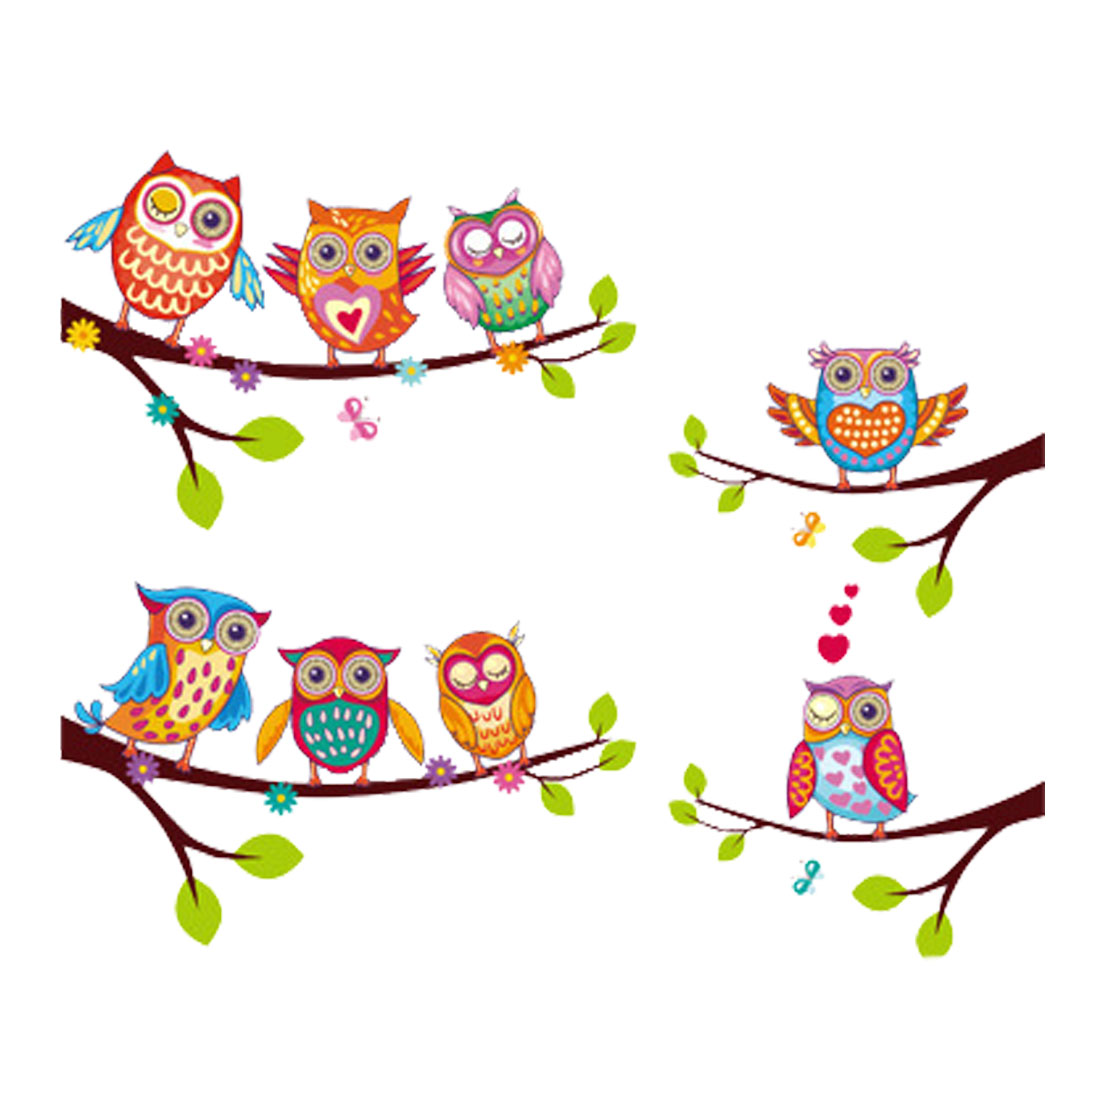 Owl Wall Stickers Removable Art DIY Paper Decal for Bedroom and Living Room